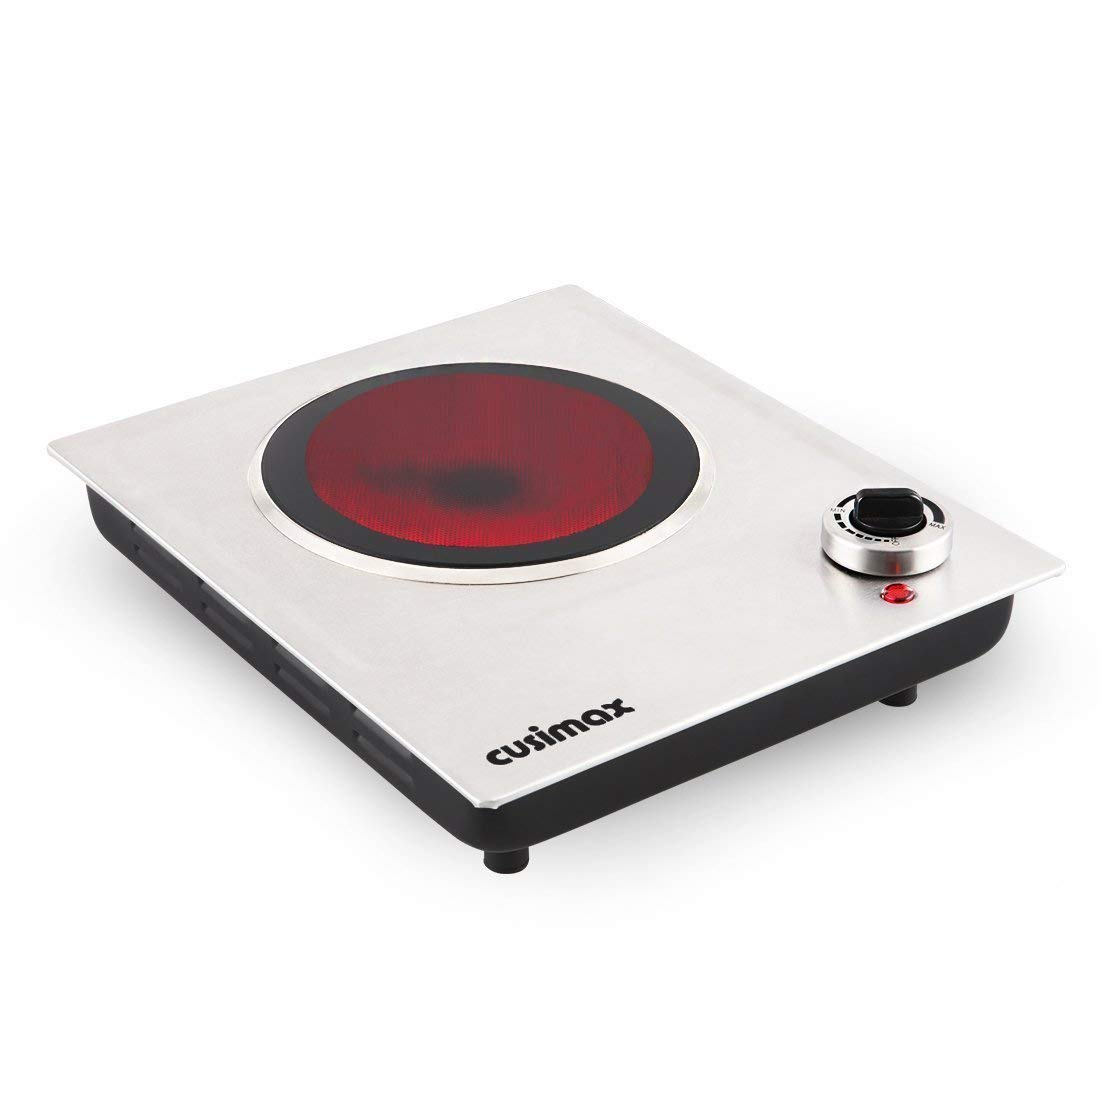 Cusimax 1200W Single Countertop Burner, Portable Ceramic Infrared Cooktop, CMIP-C120, Stainless Steel